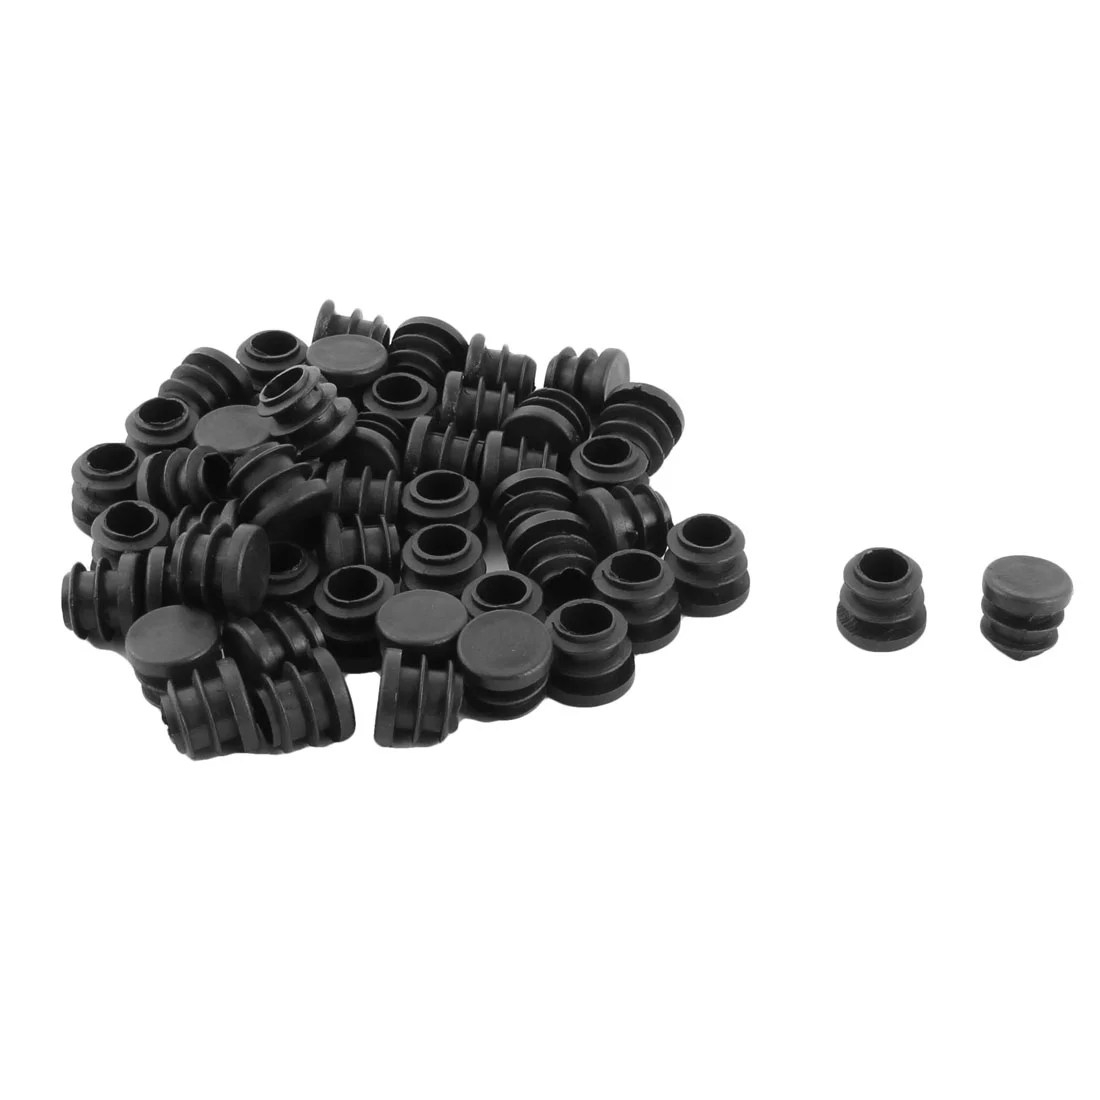 Caps For Chair Legs Plastic Round Flat Type Table Chair Leg Caps Tube Insert Black 16mm Dia 50pcs